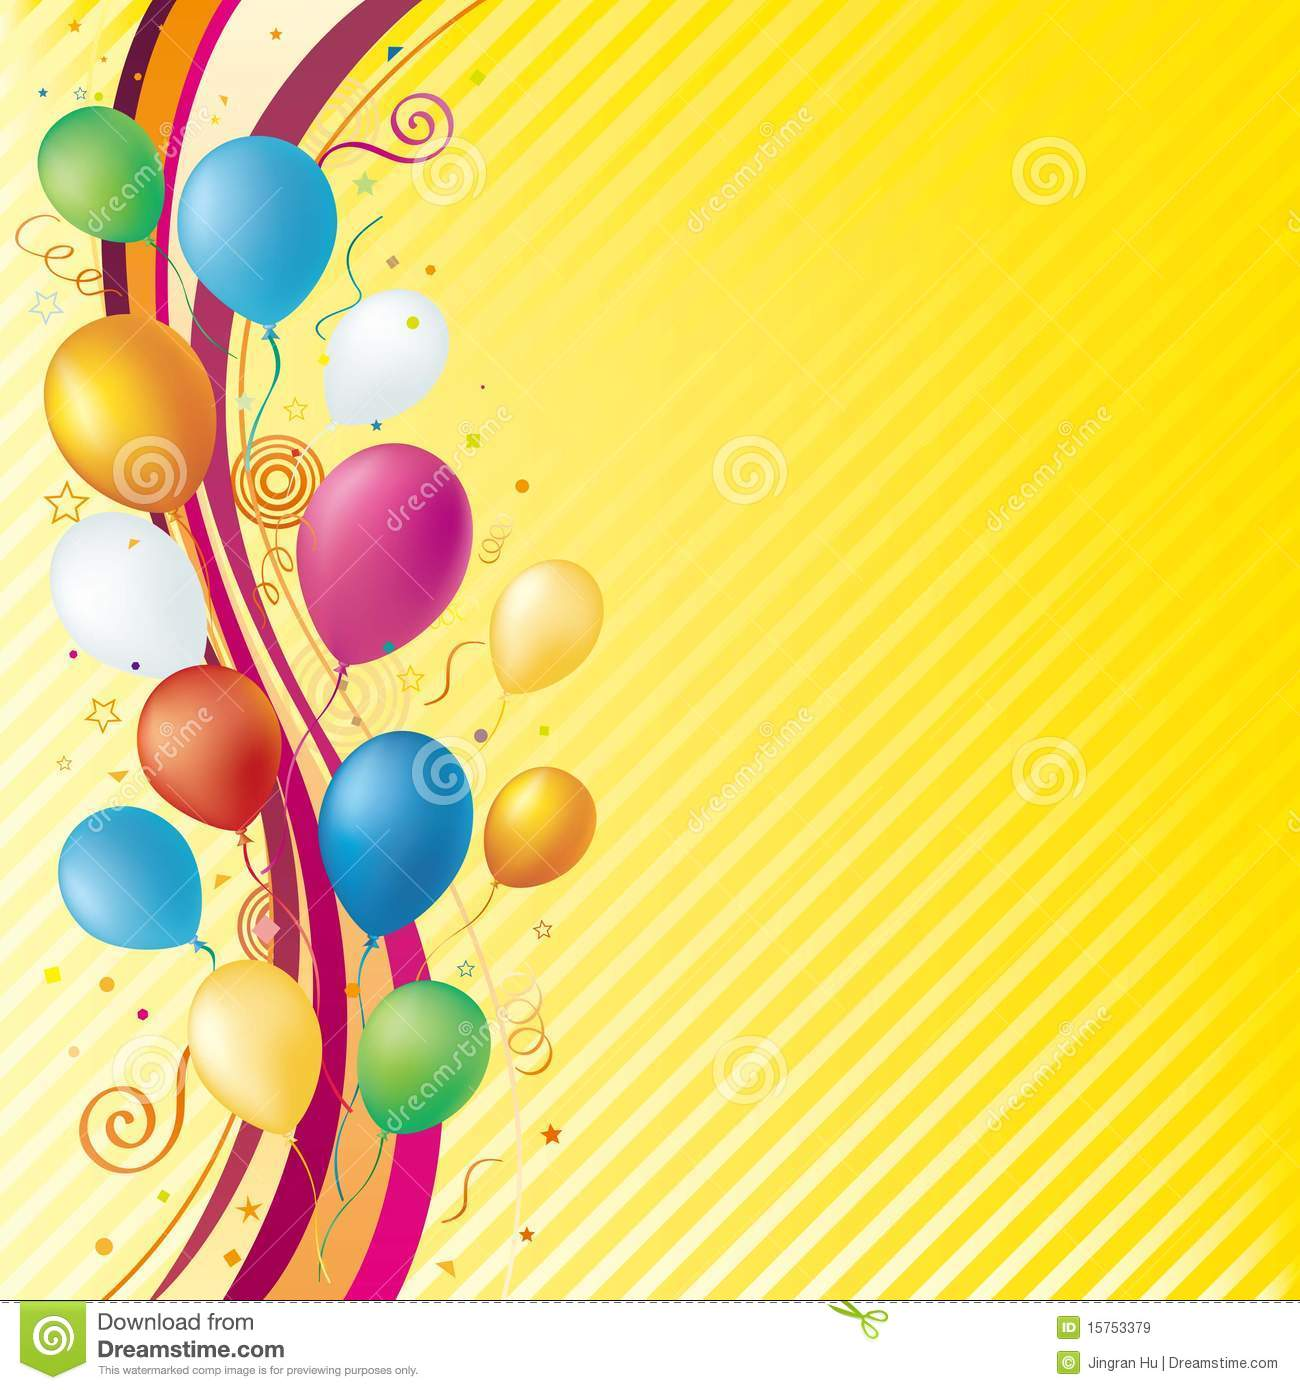 Balloon And Celebration Background Royalty Free Stock